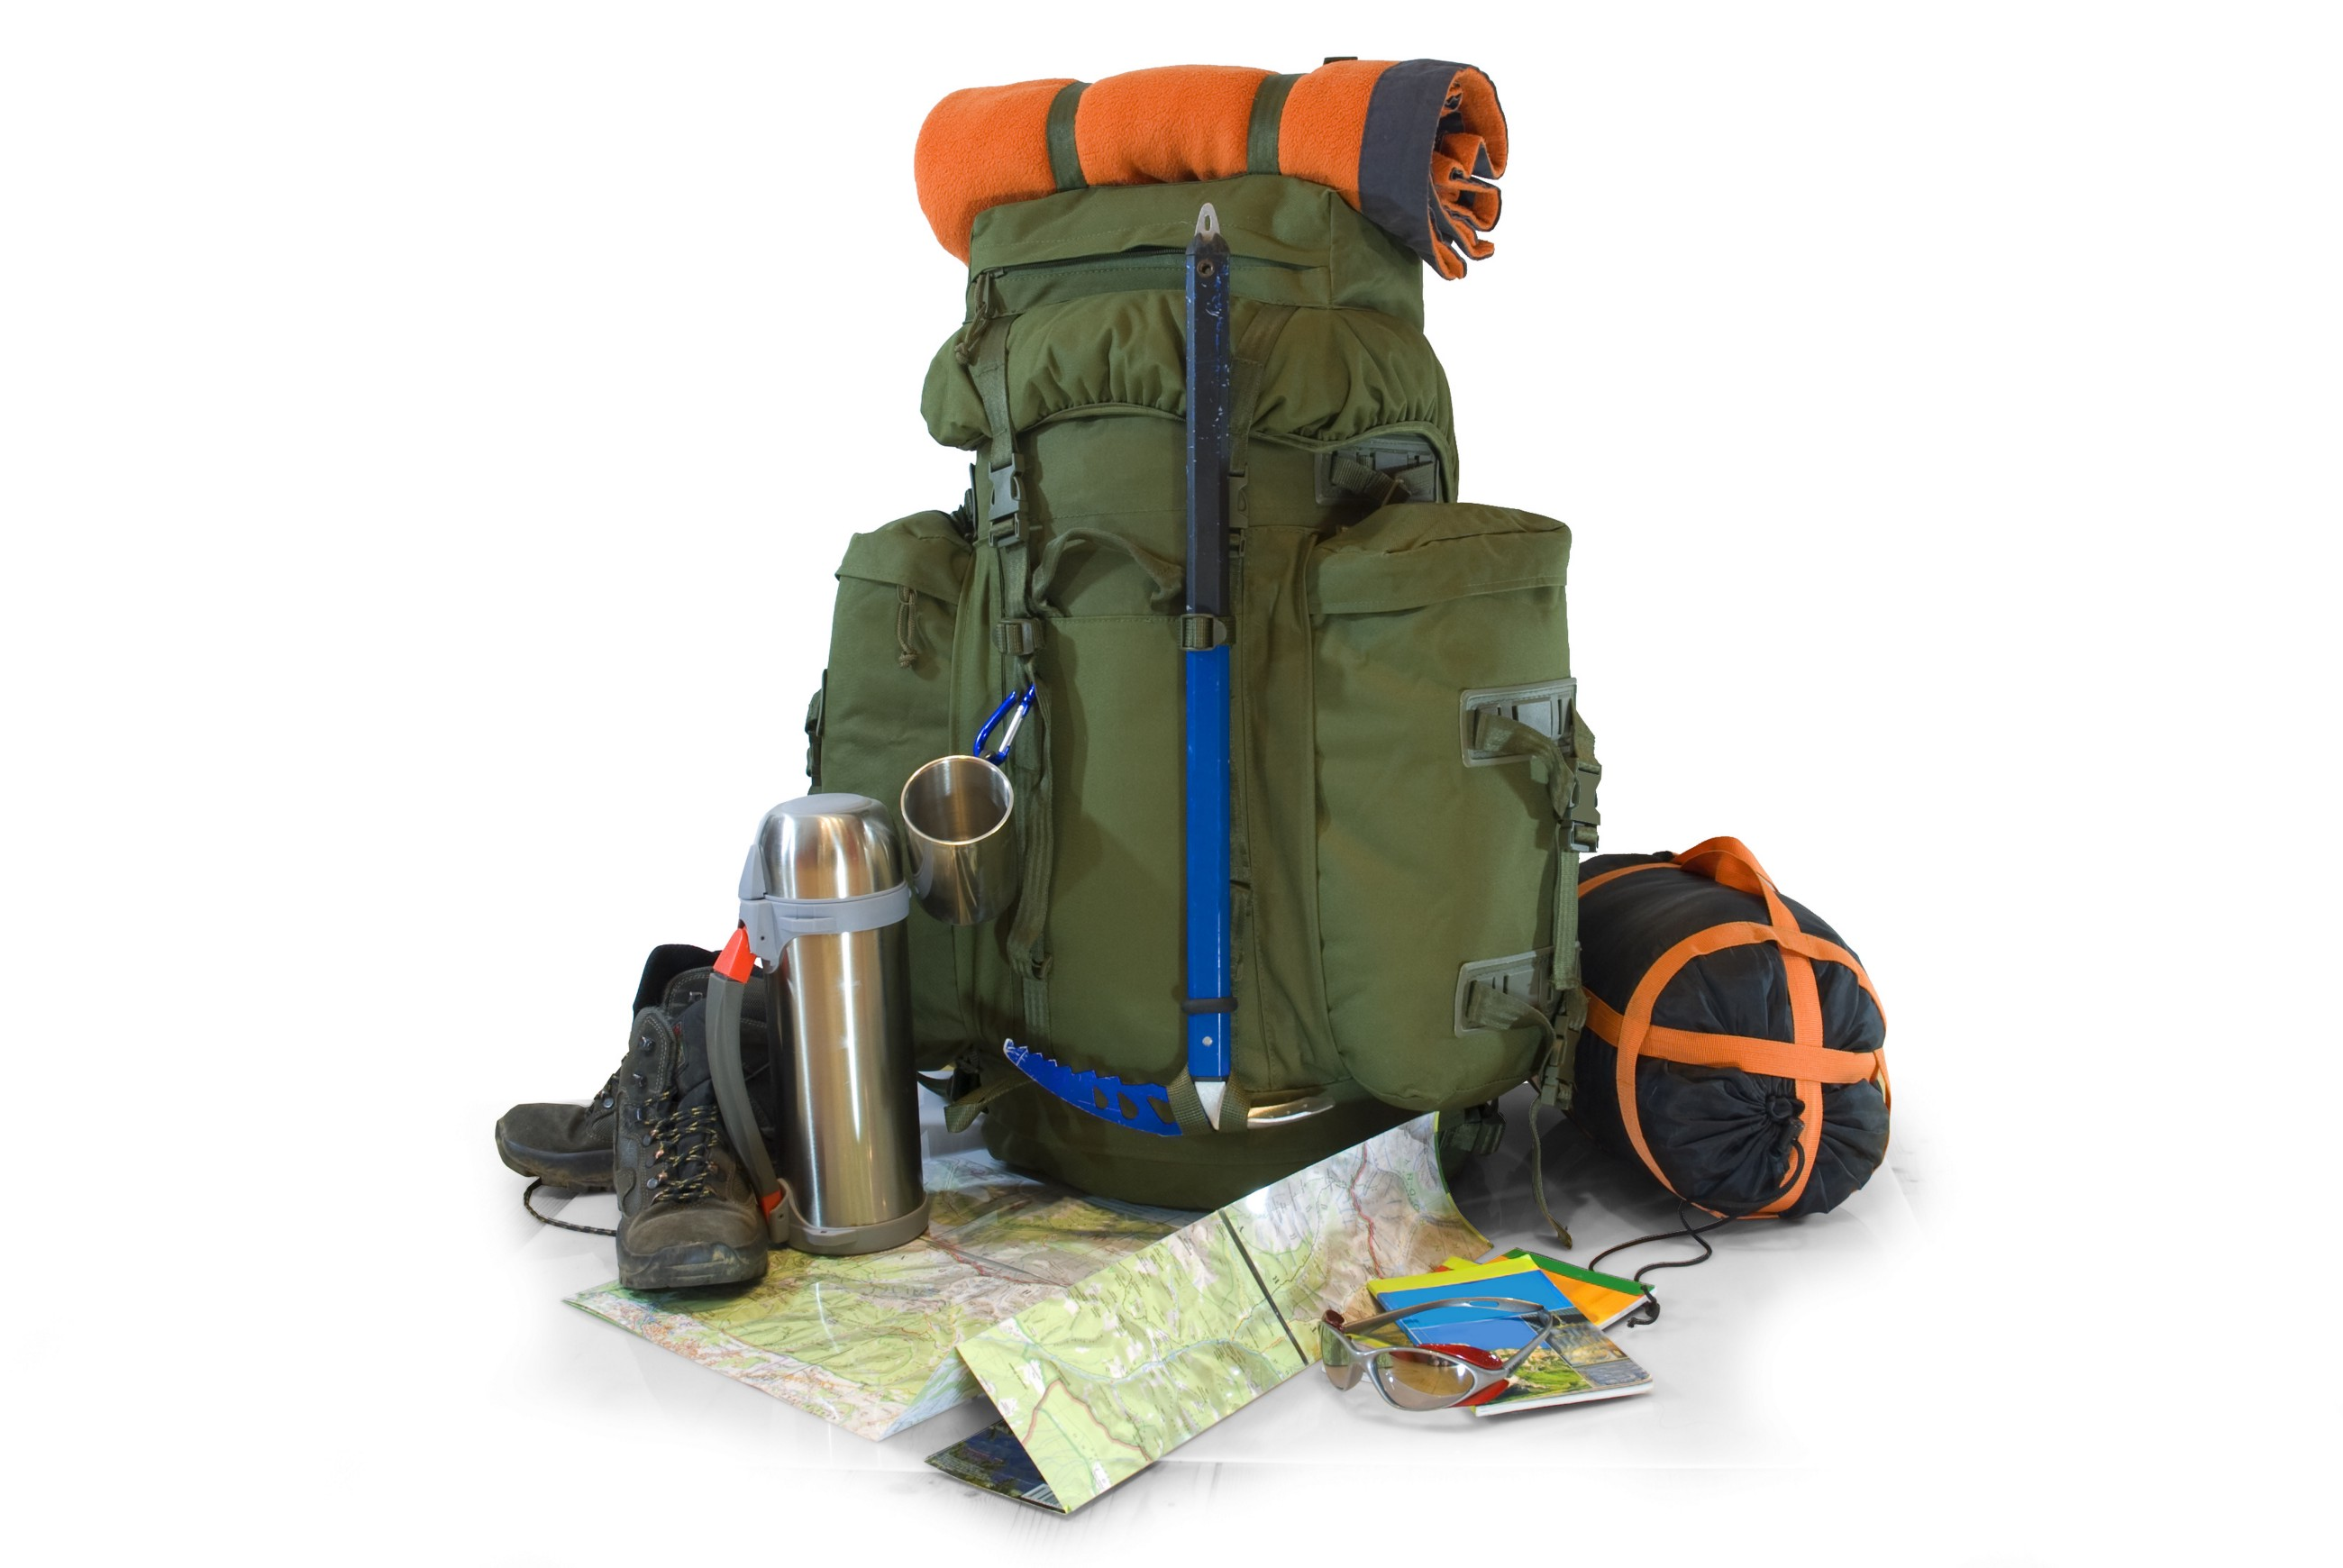 8b4d0bdc1e The Cure for Uncertain Times  Build a Badass Bug Out Bag